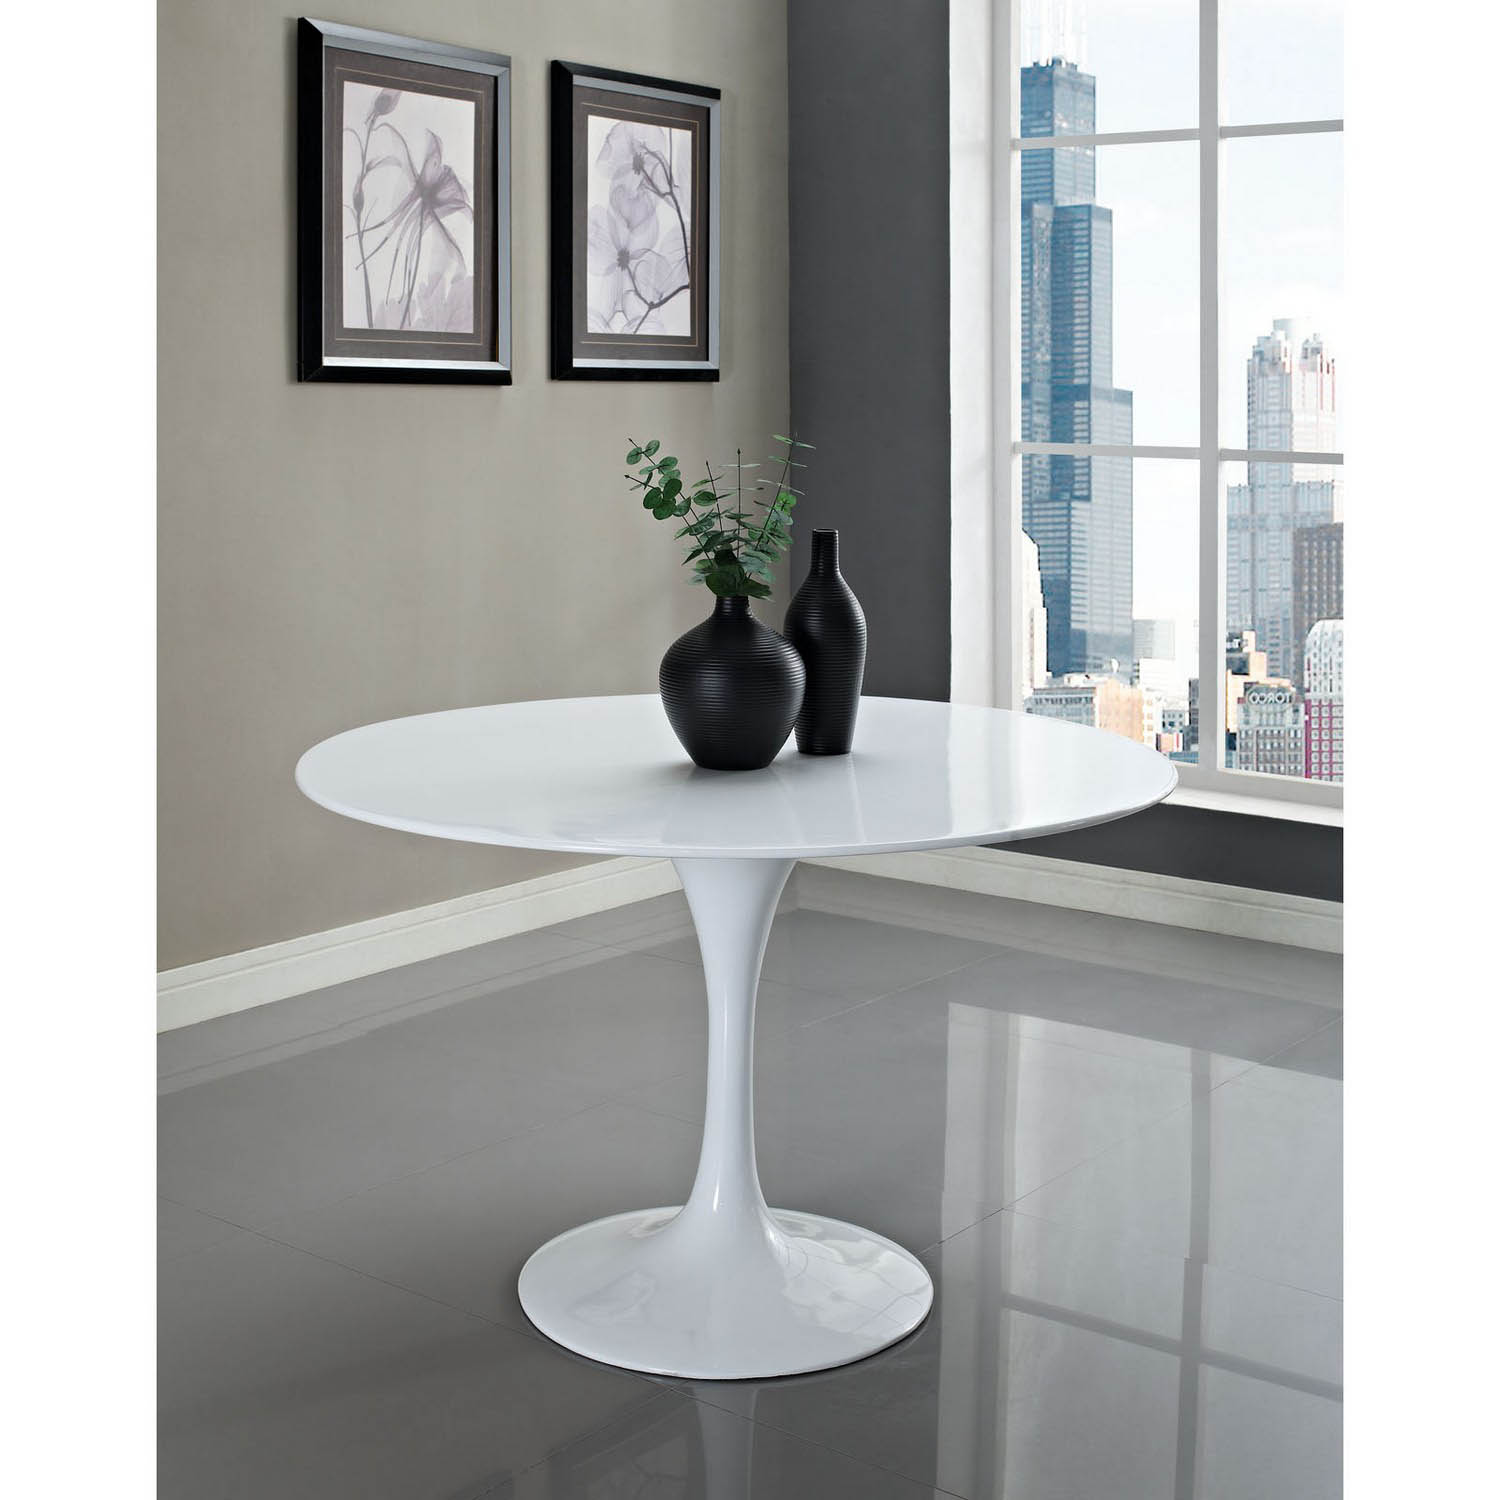 Modway Lippa 48 Fiberglass Dining Table - White